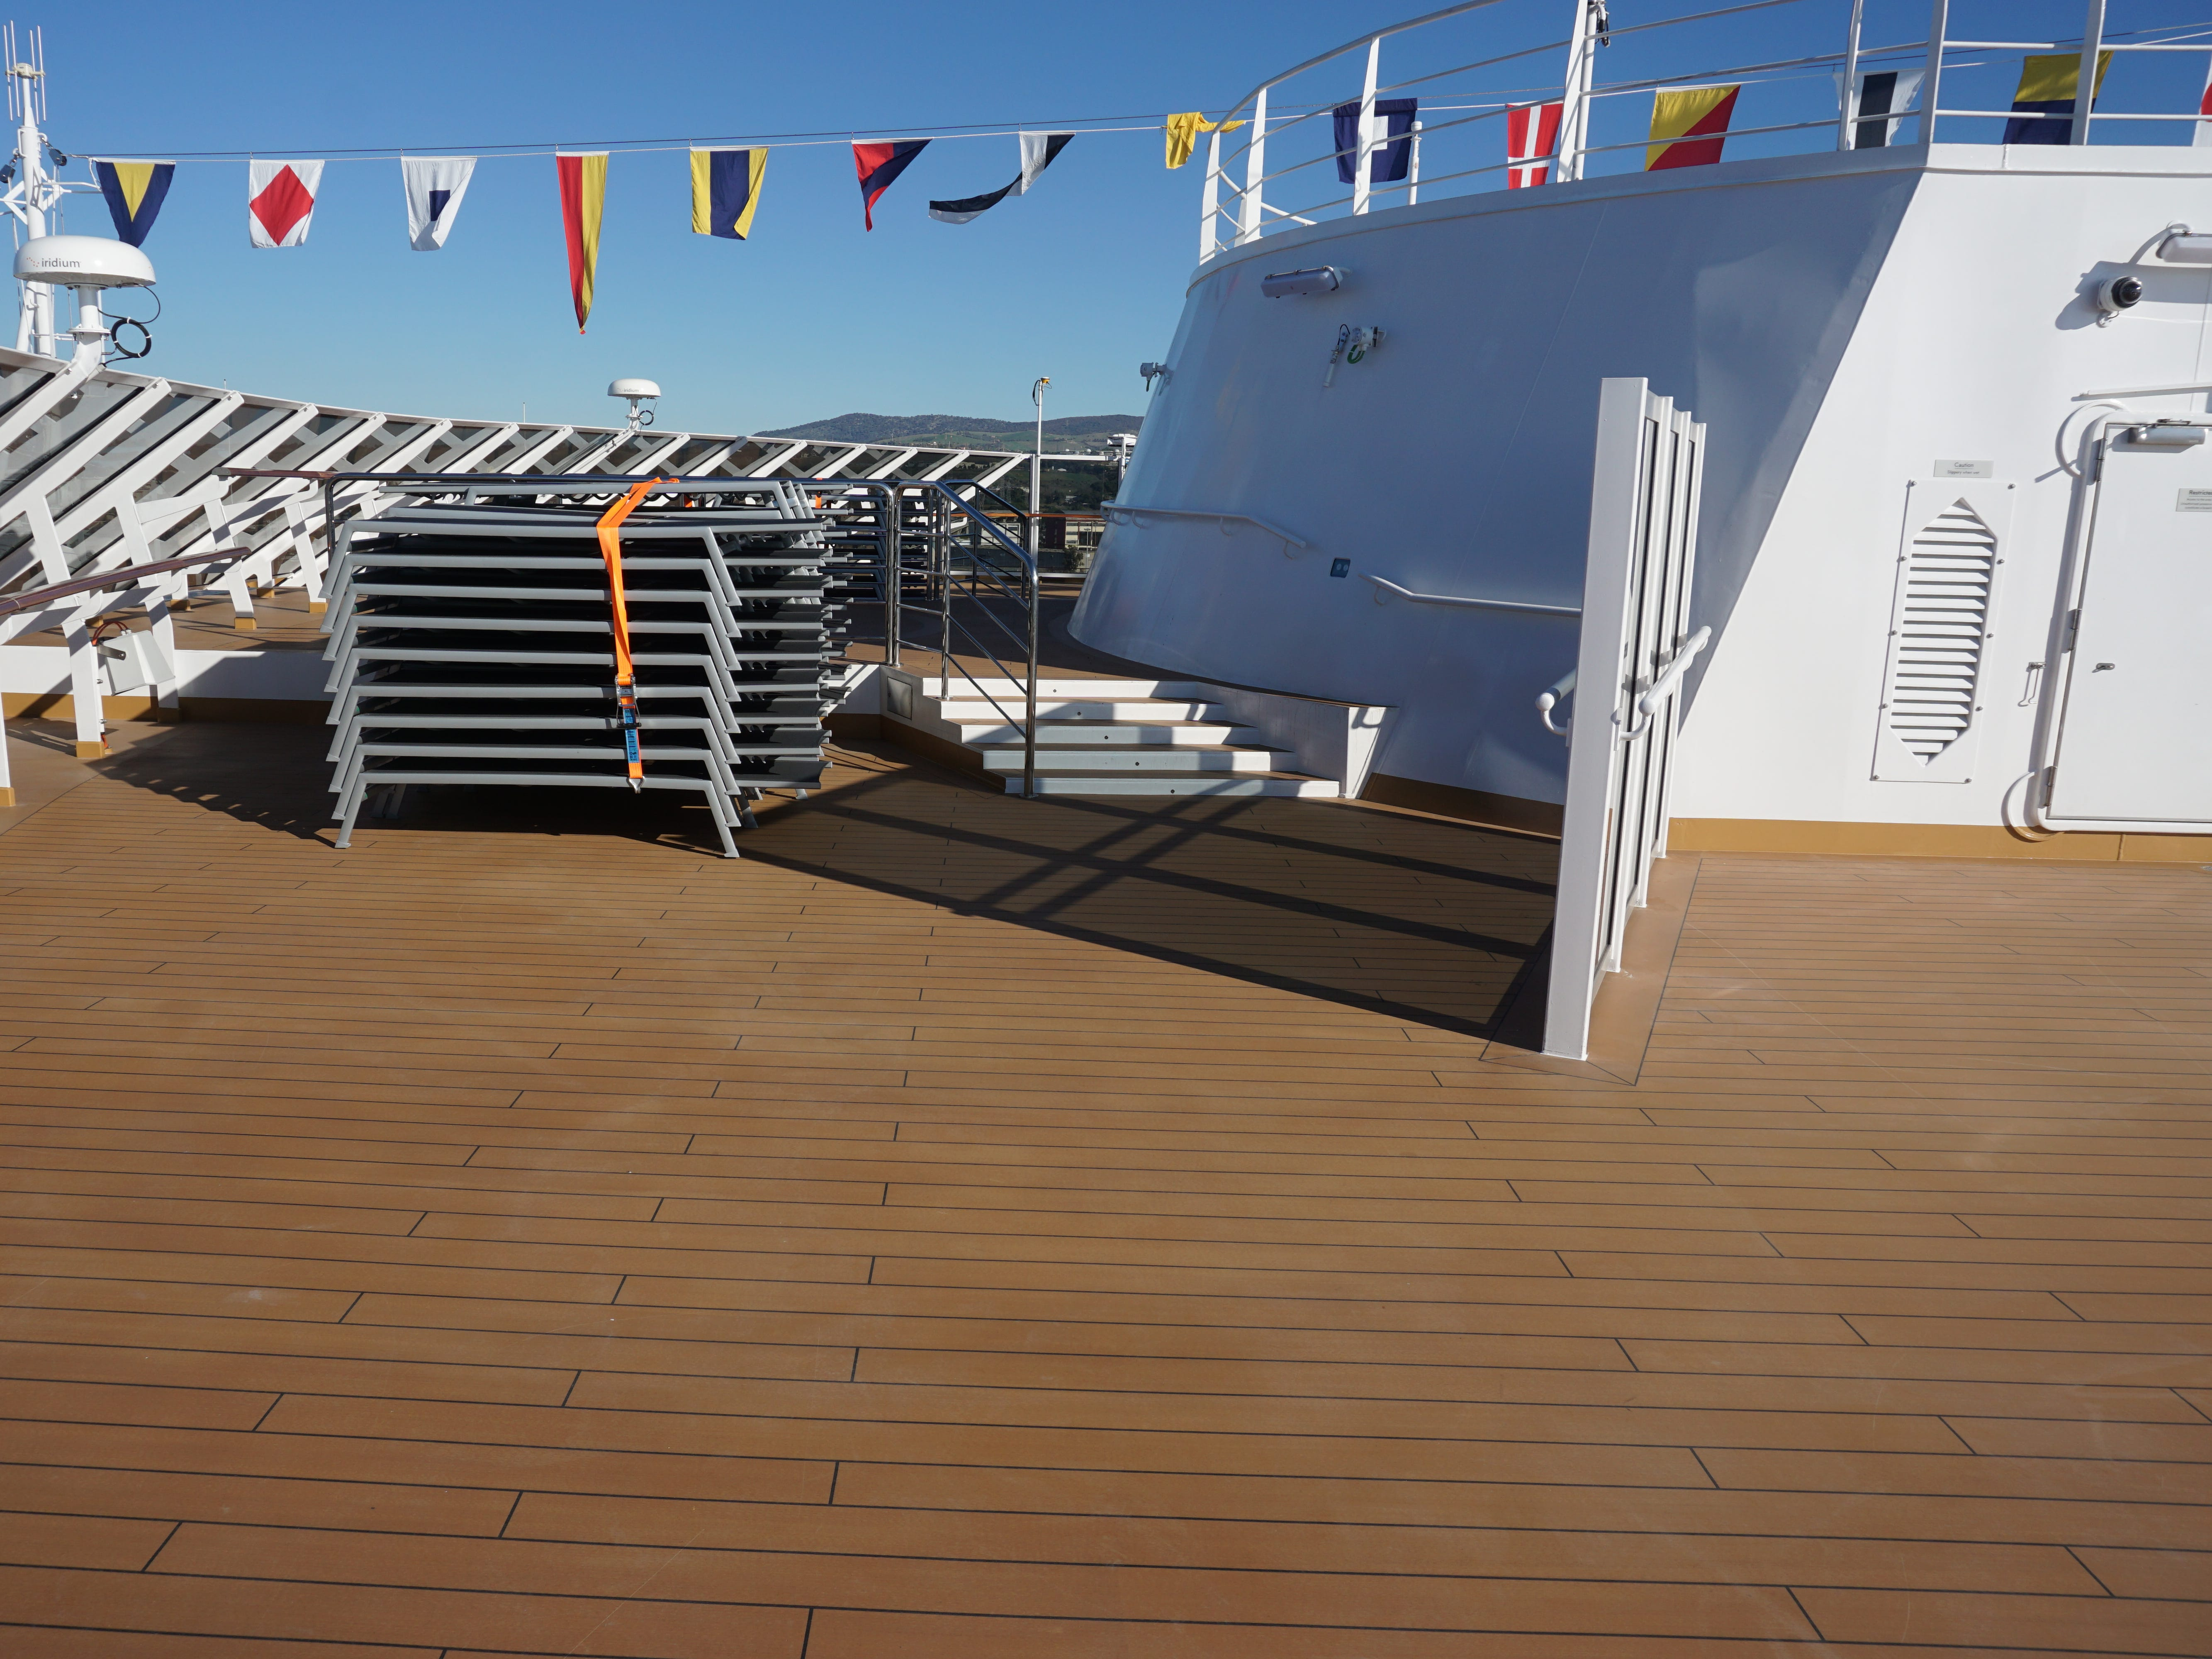 The uppermost of the Nieuw Statendam's 13 guest decks, Deck 14 overlooks the bow and surrounds the radio mast platform. It is protected on three sides by glass screens.